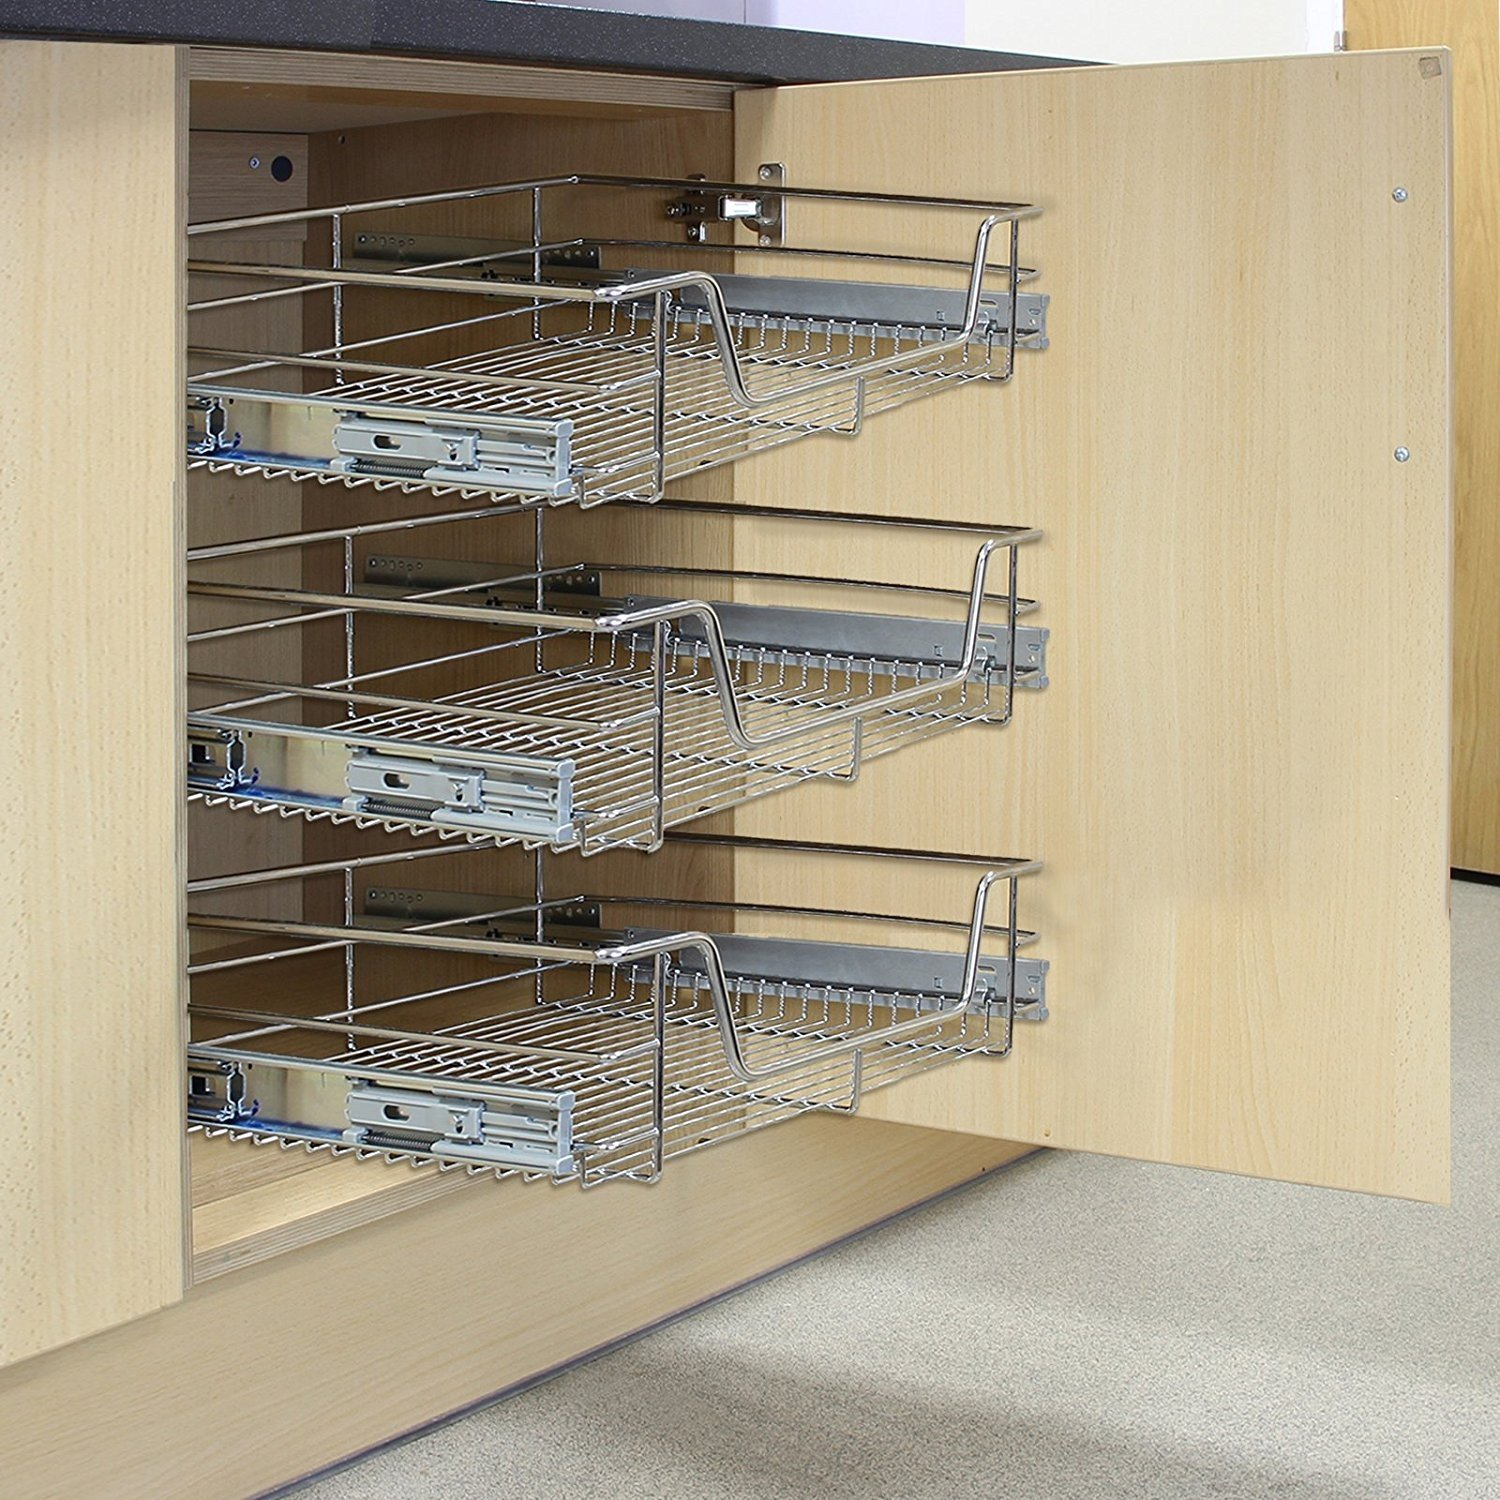 KuKoo 3 x Kitchen Pull Out Soft Close Baskets, 400mm Wide Cabinet, Slide Out Wire Storage Drawers MonsterShop